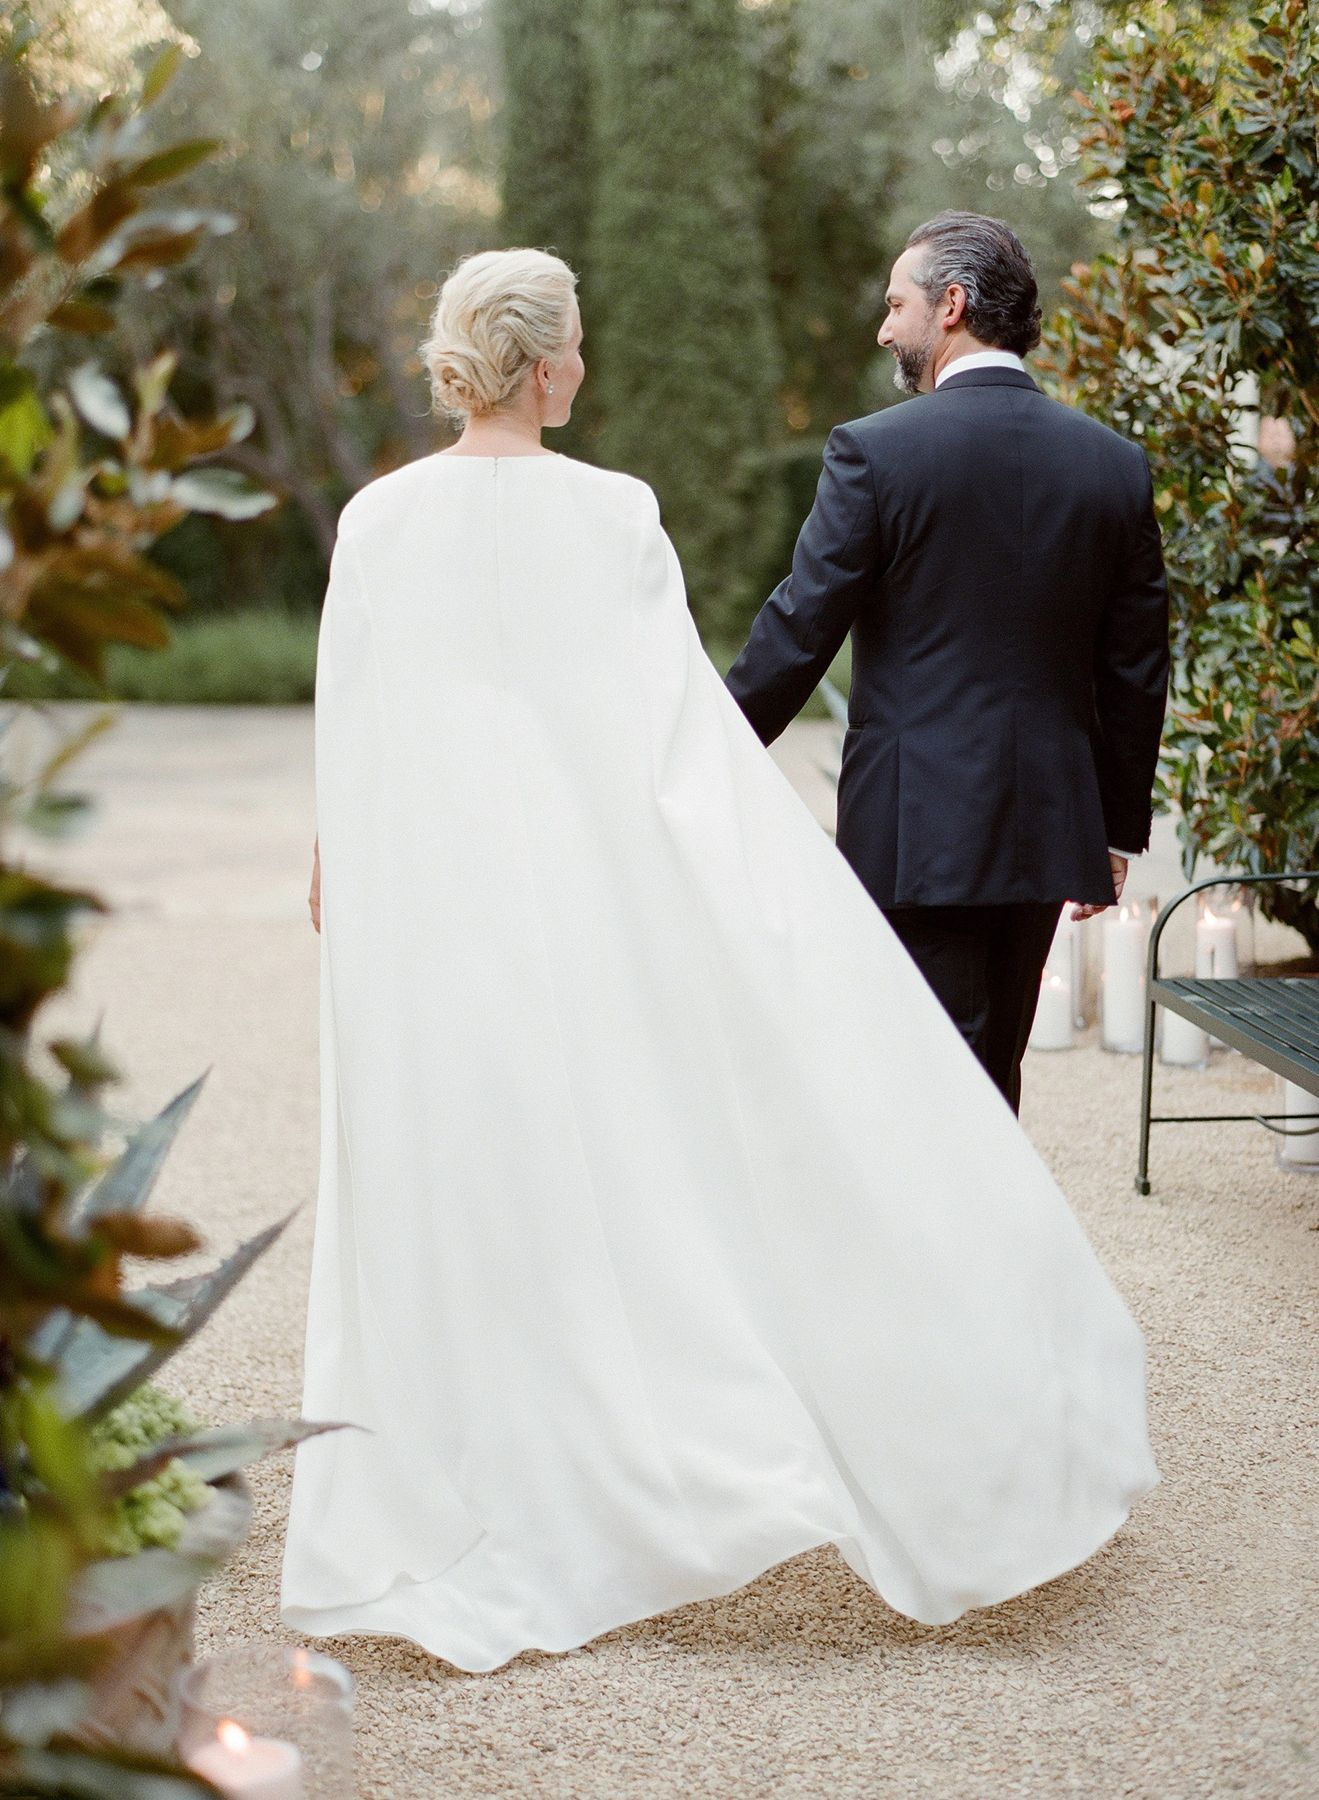 Neiman marcus dresses for weddings  The Cape  Oscar de la Renta from Neiman Marcus dweddings